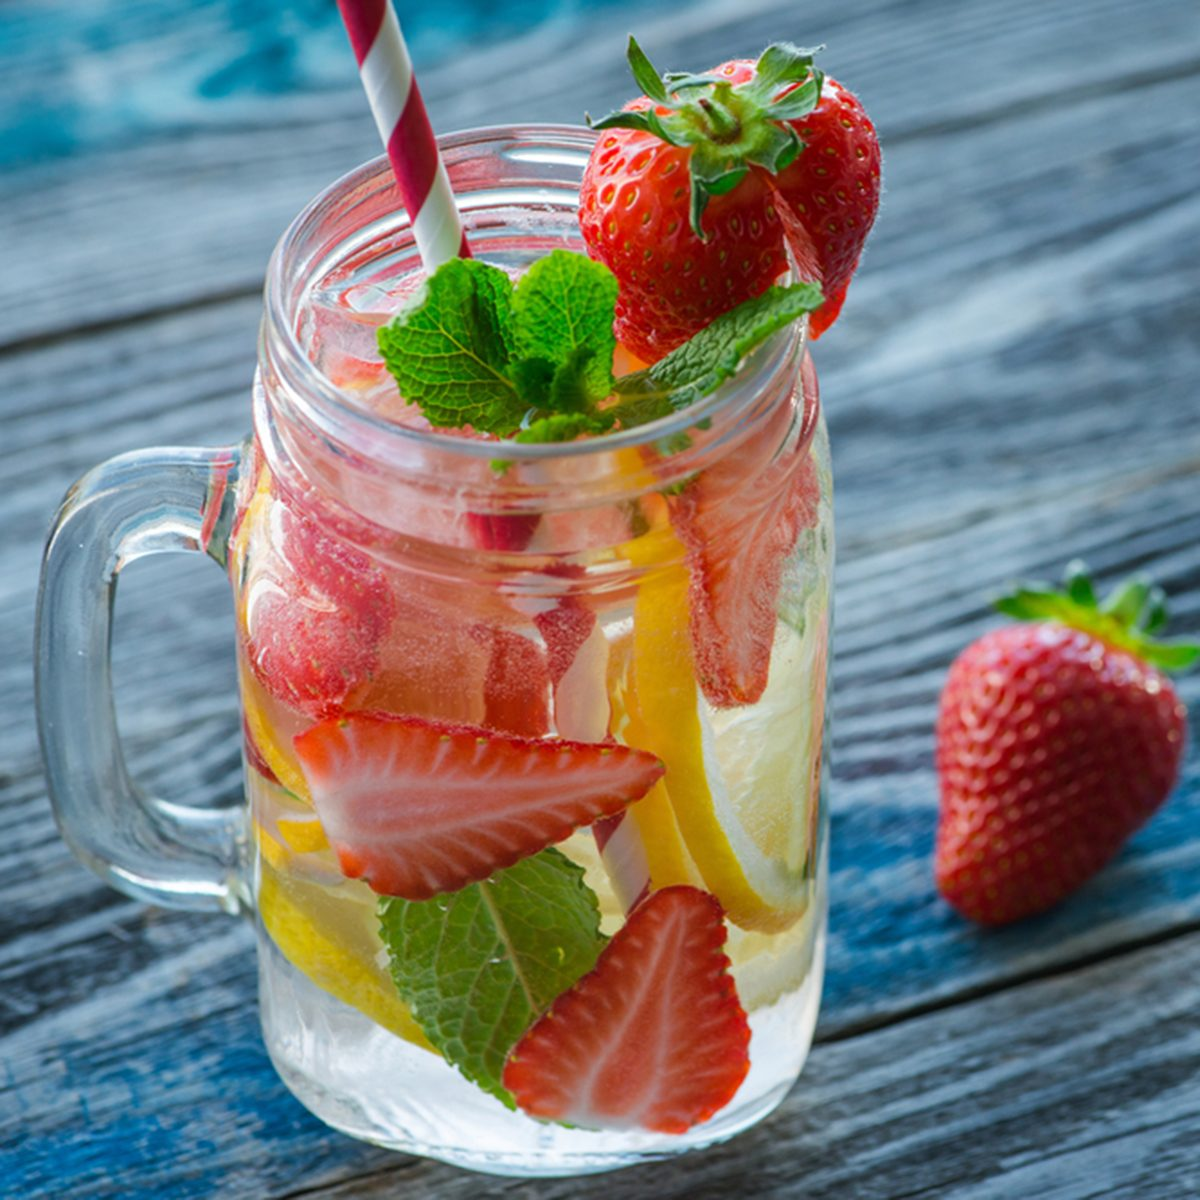 Jug with lemon and strawberry infused water on a rustic wooden table